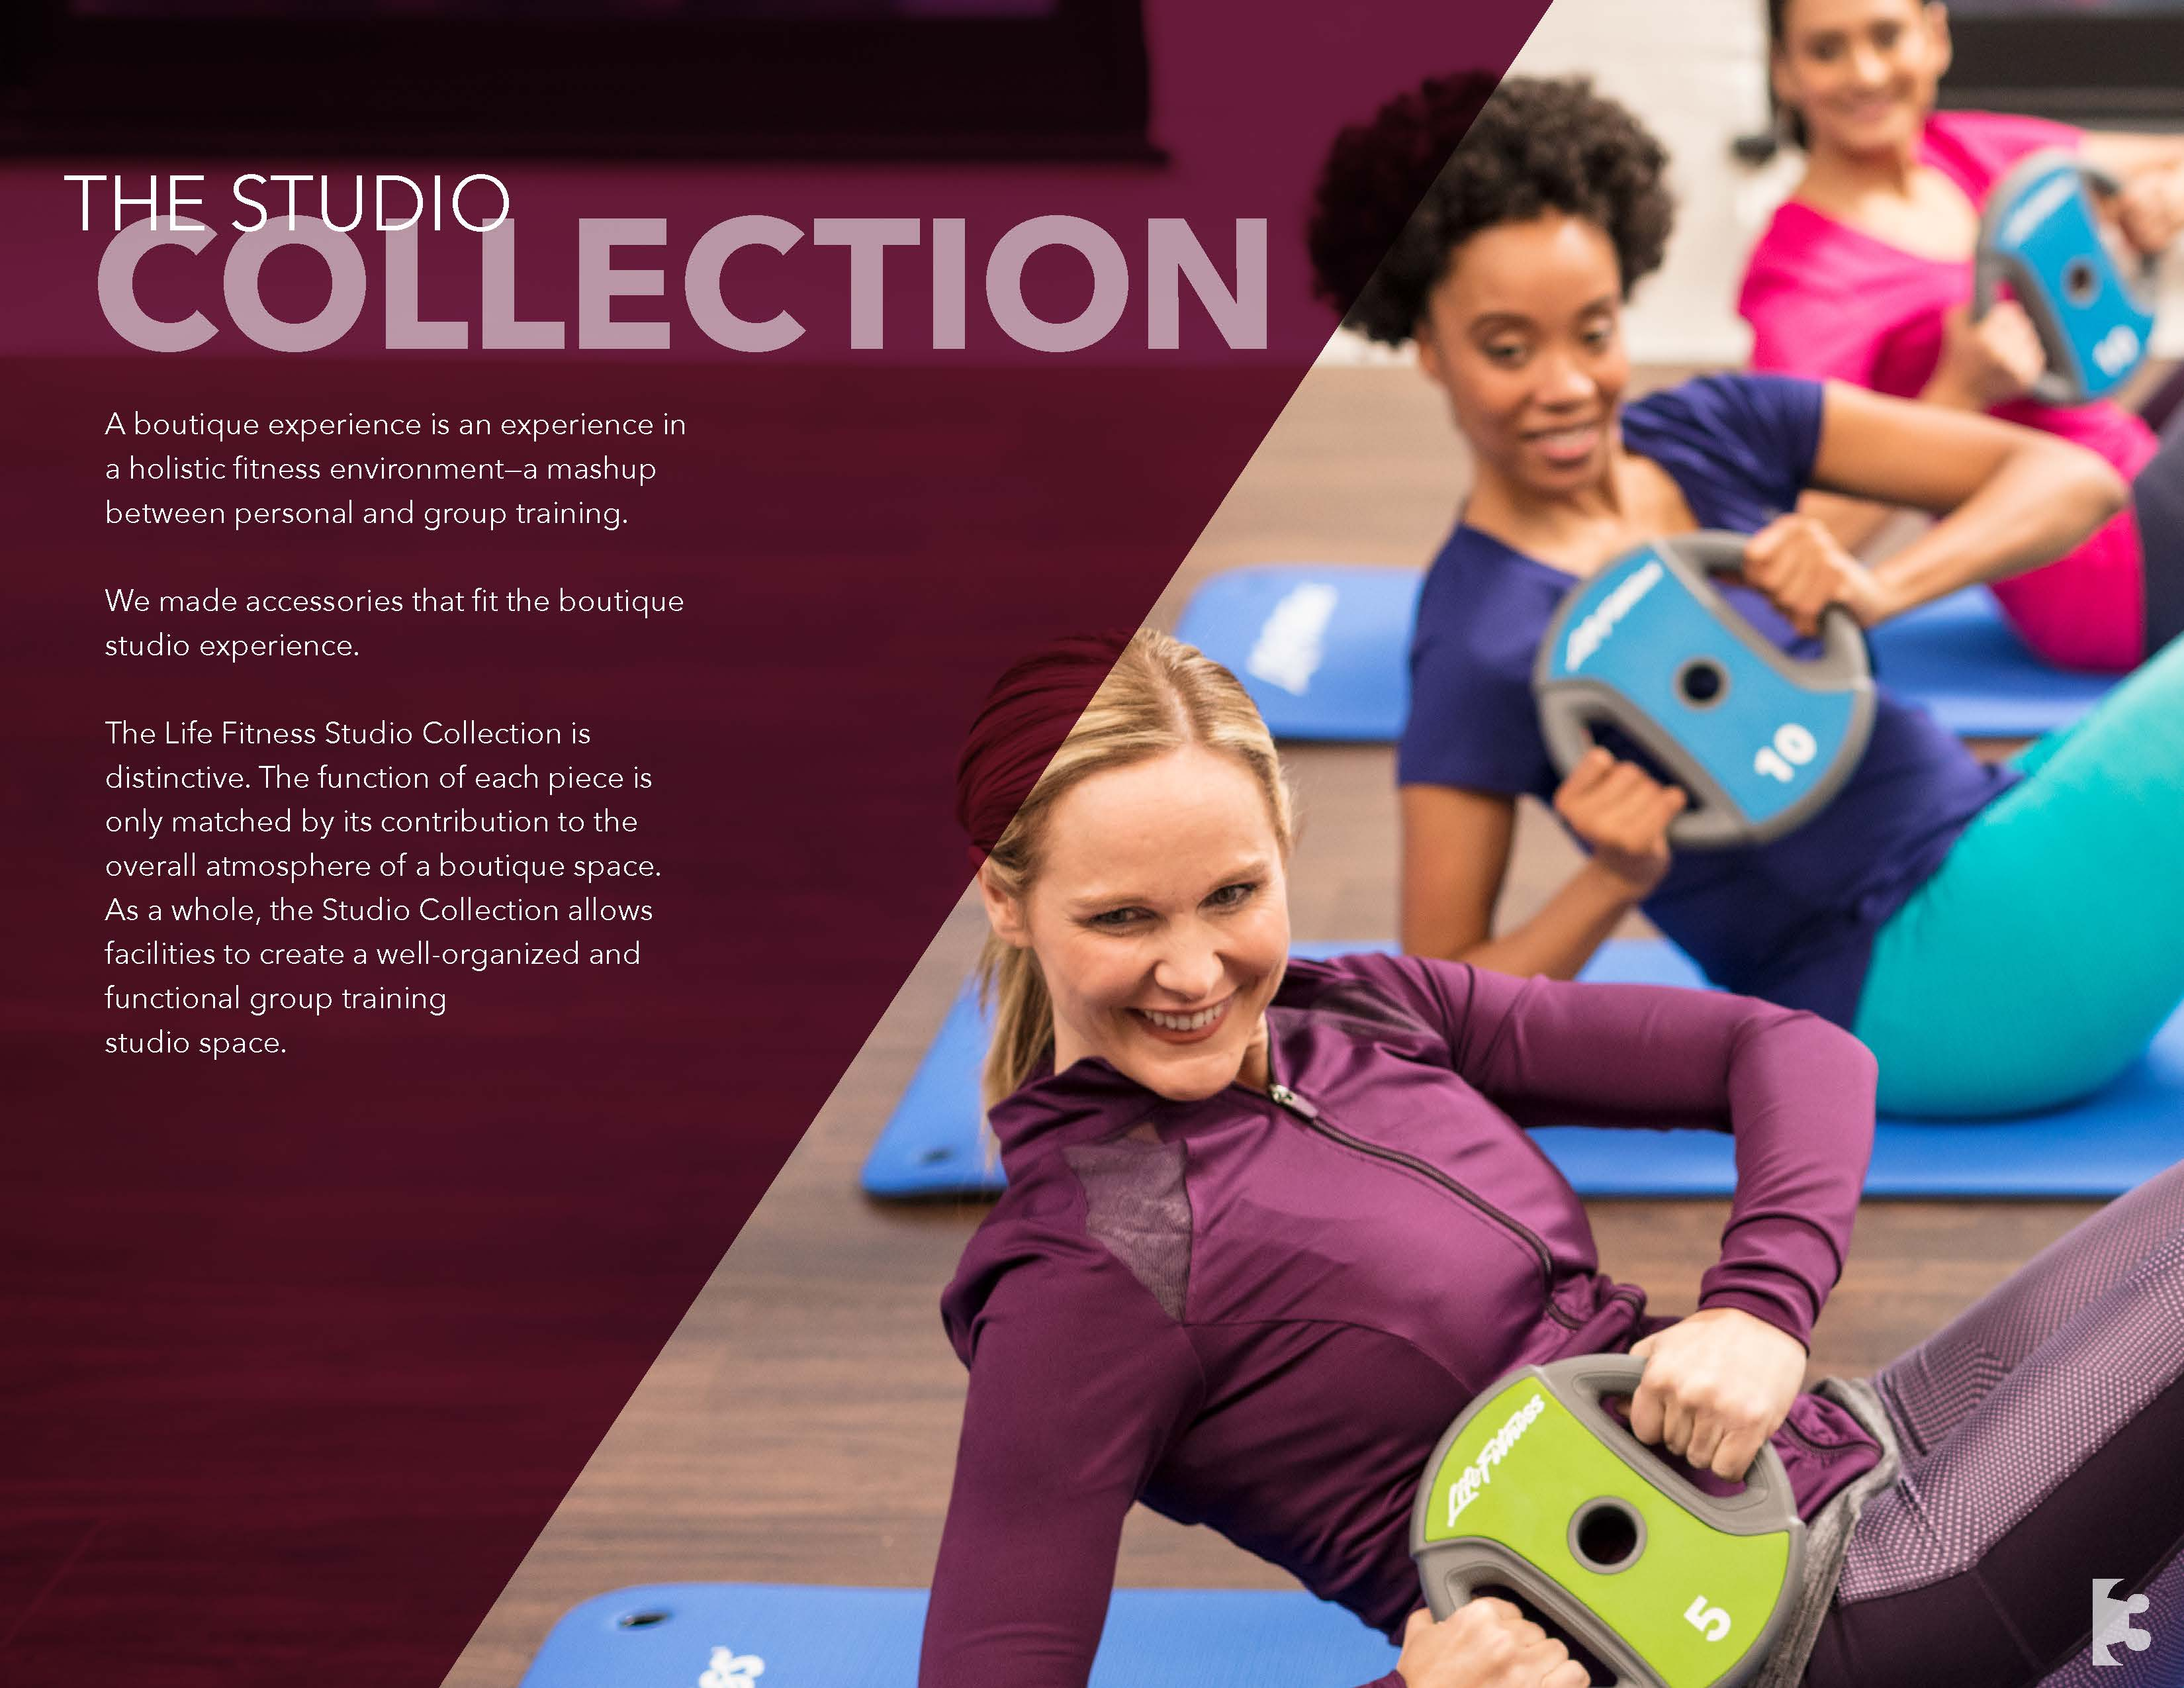 PM-067-2017-StudioCollection-Brochure-vf_Page_03